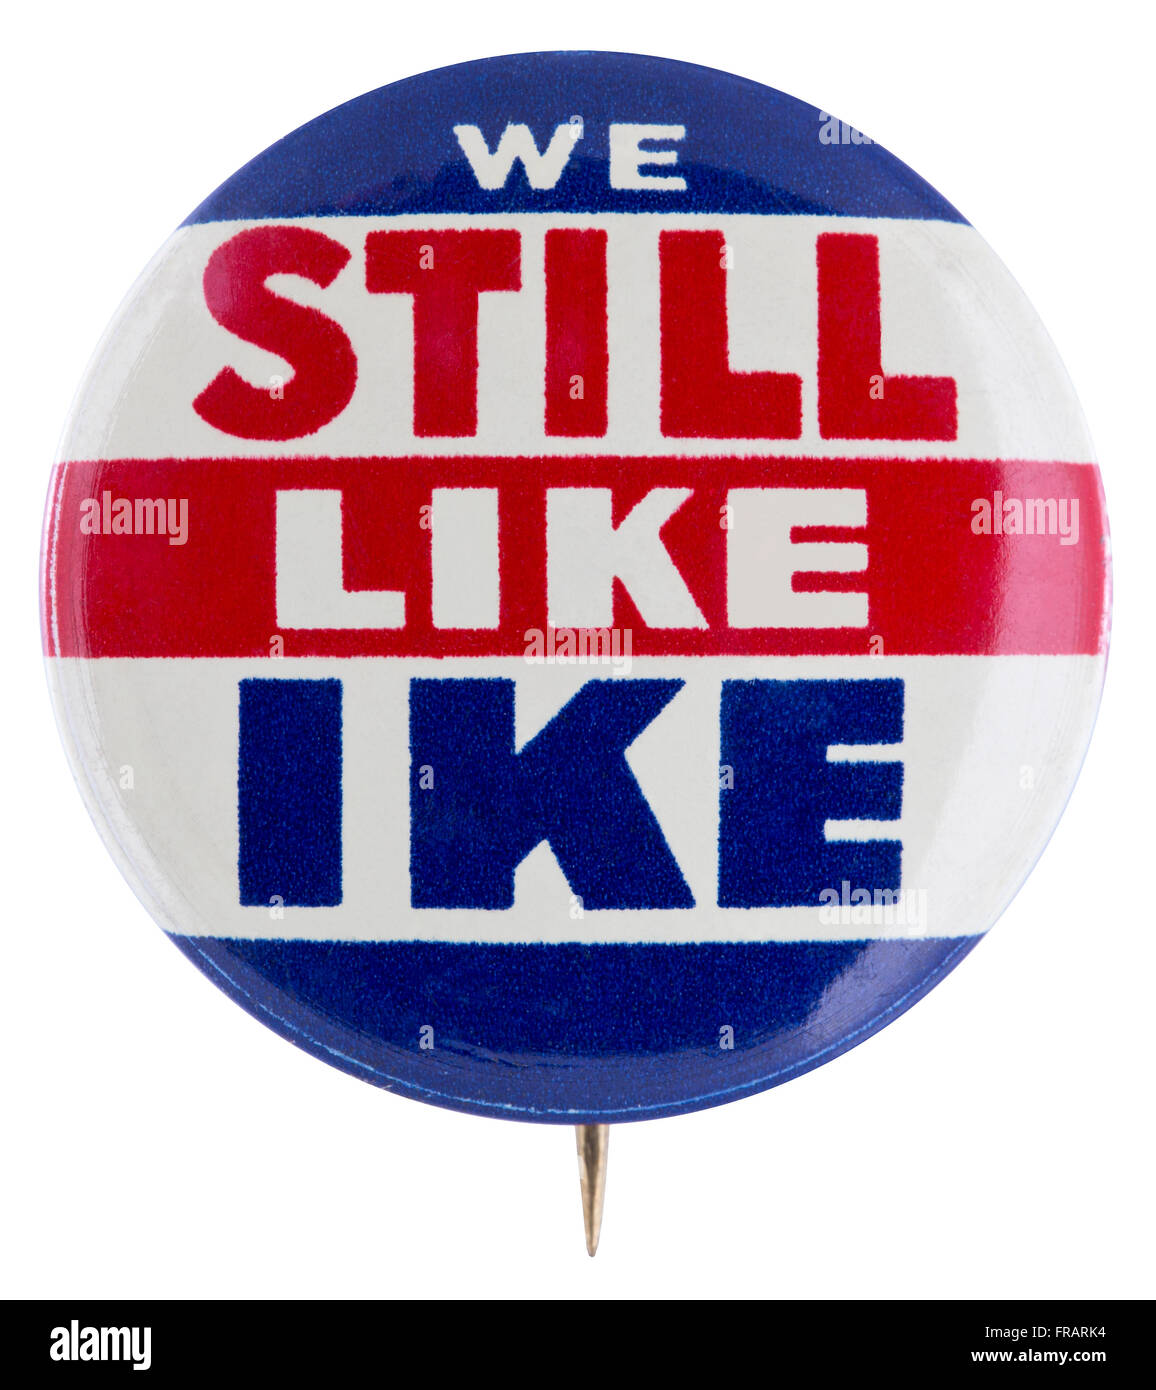 1956 Dwight D. Eisenhower presidential campaign pin back button badge with the slogan of We Still Like Ike - Stock Image